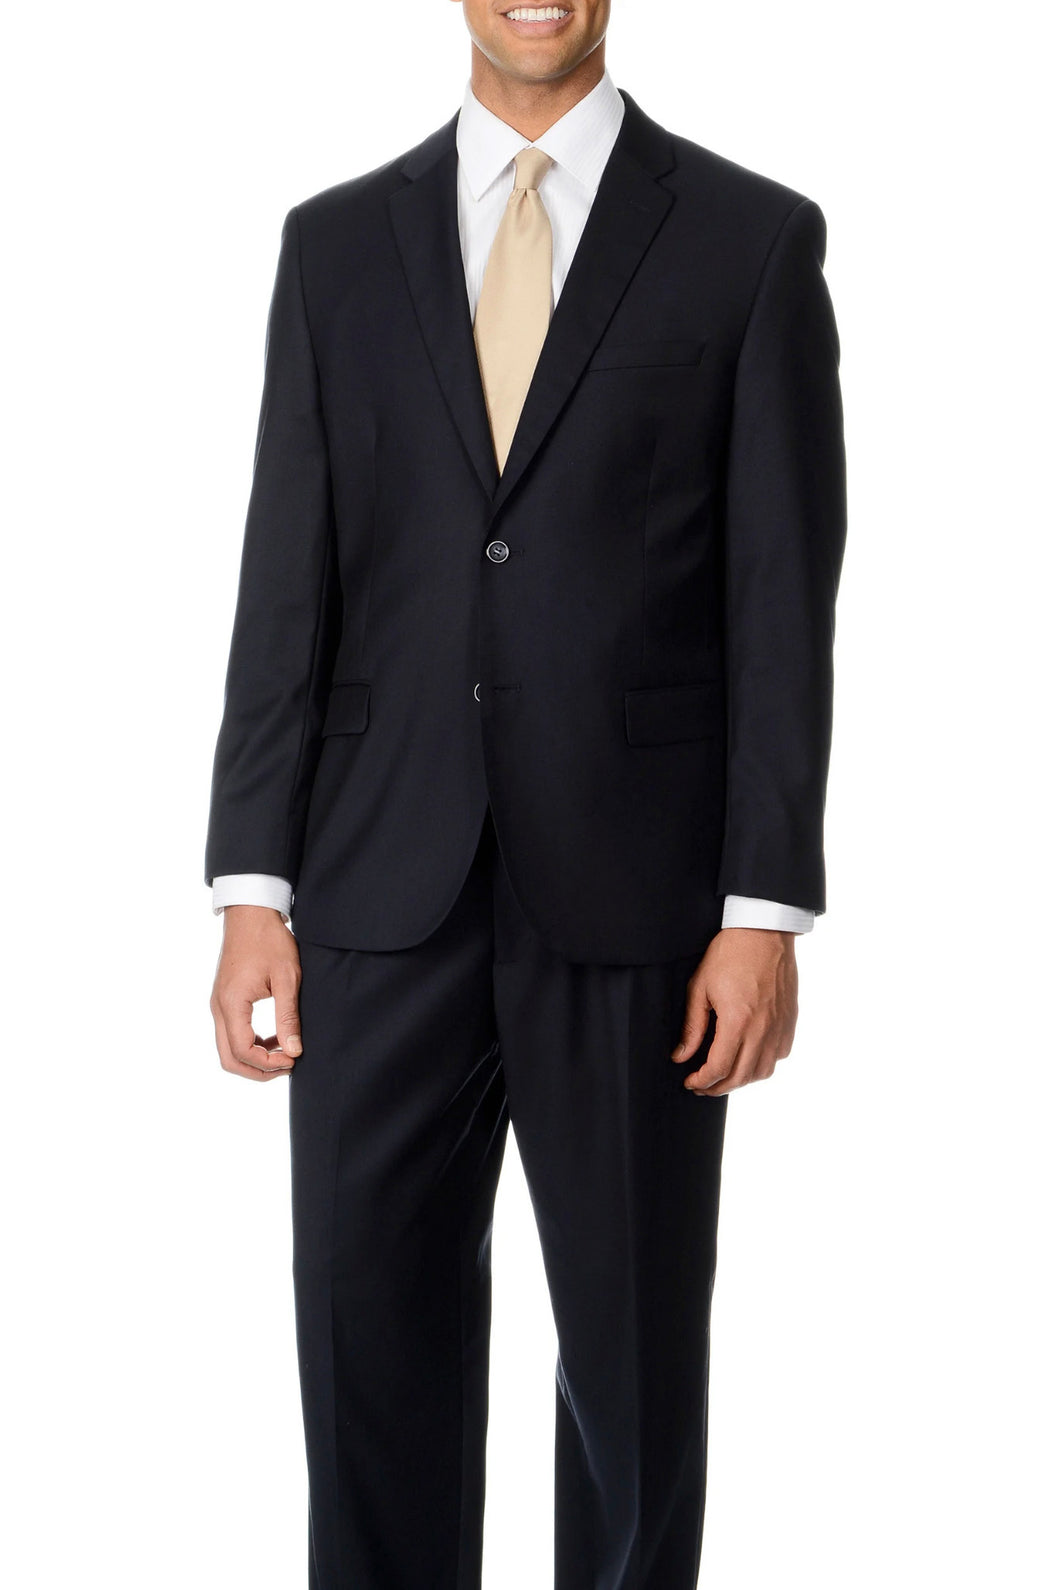 Caravelli Solid Navy Slim Suit